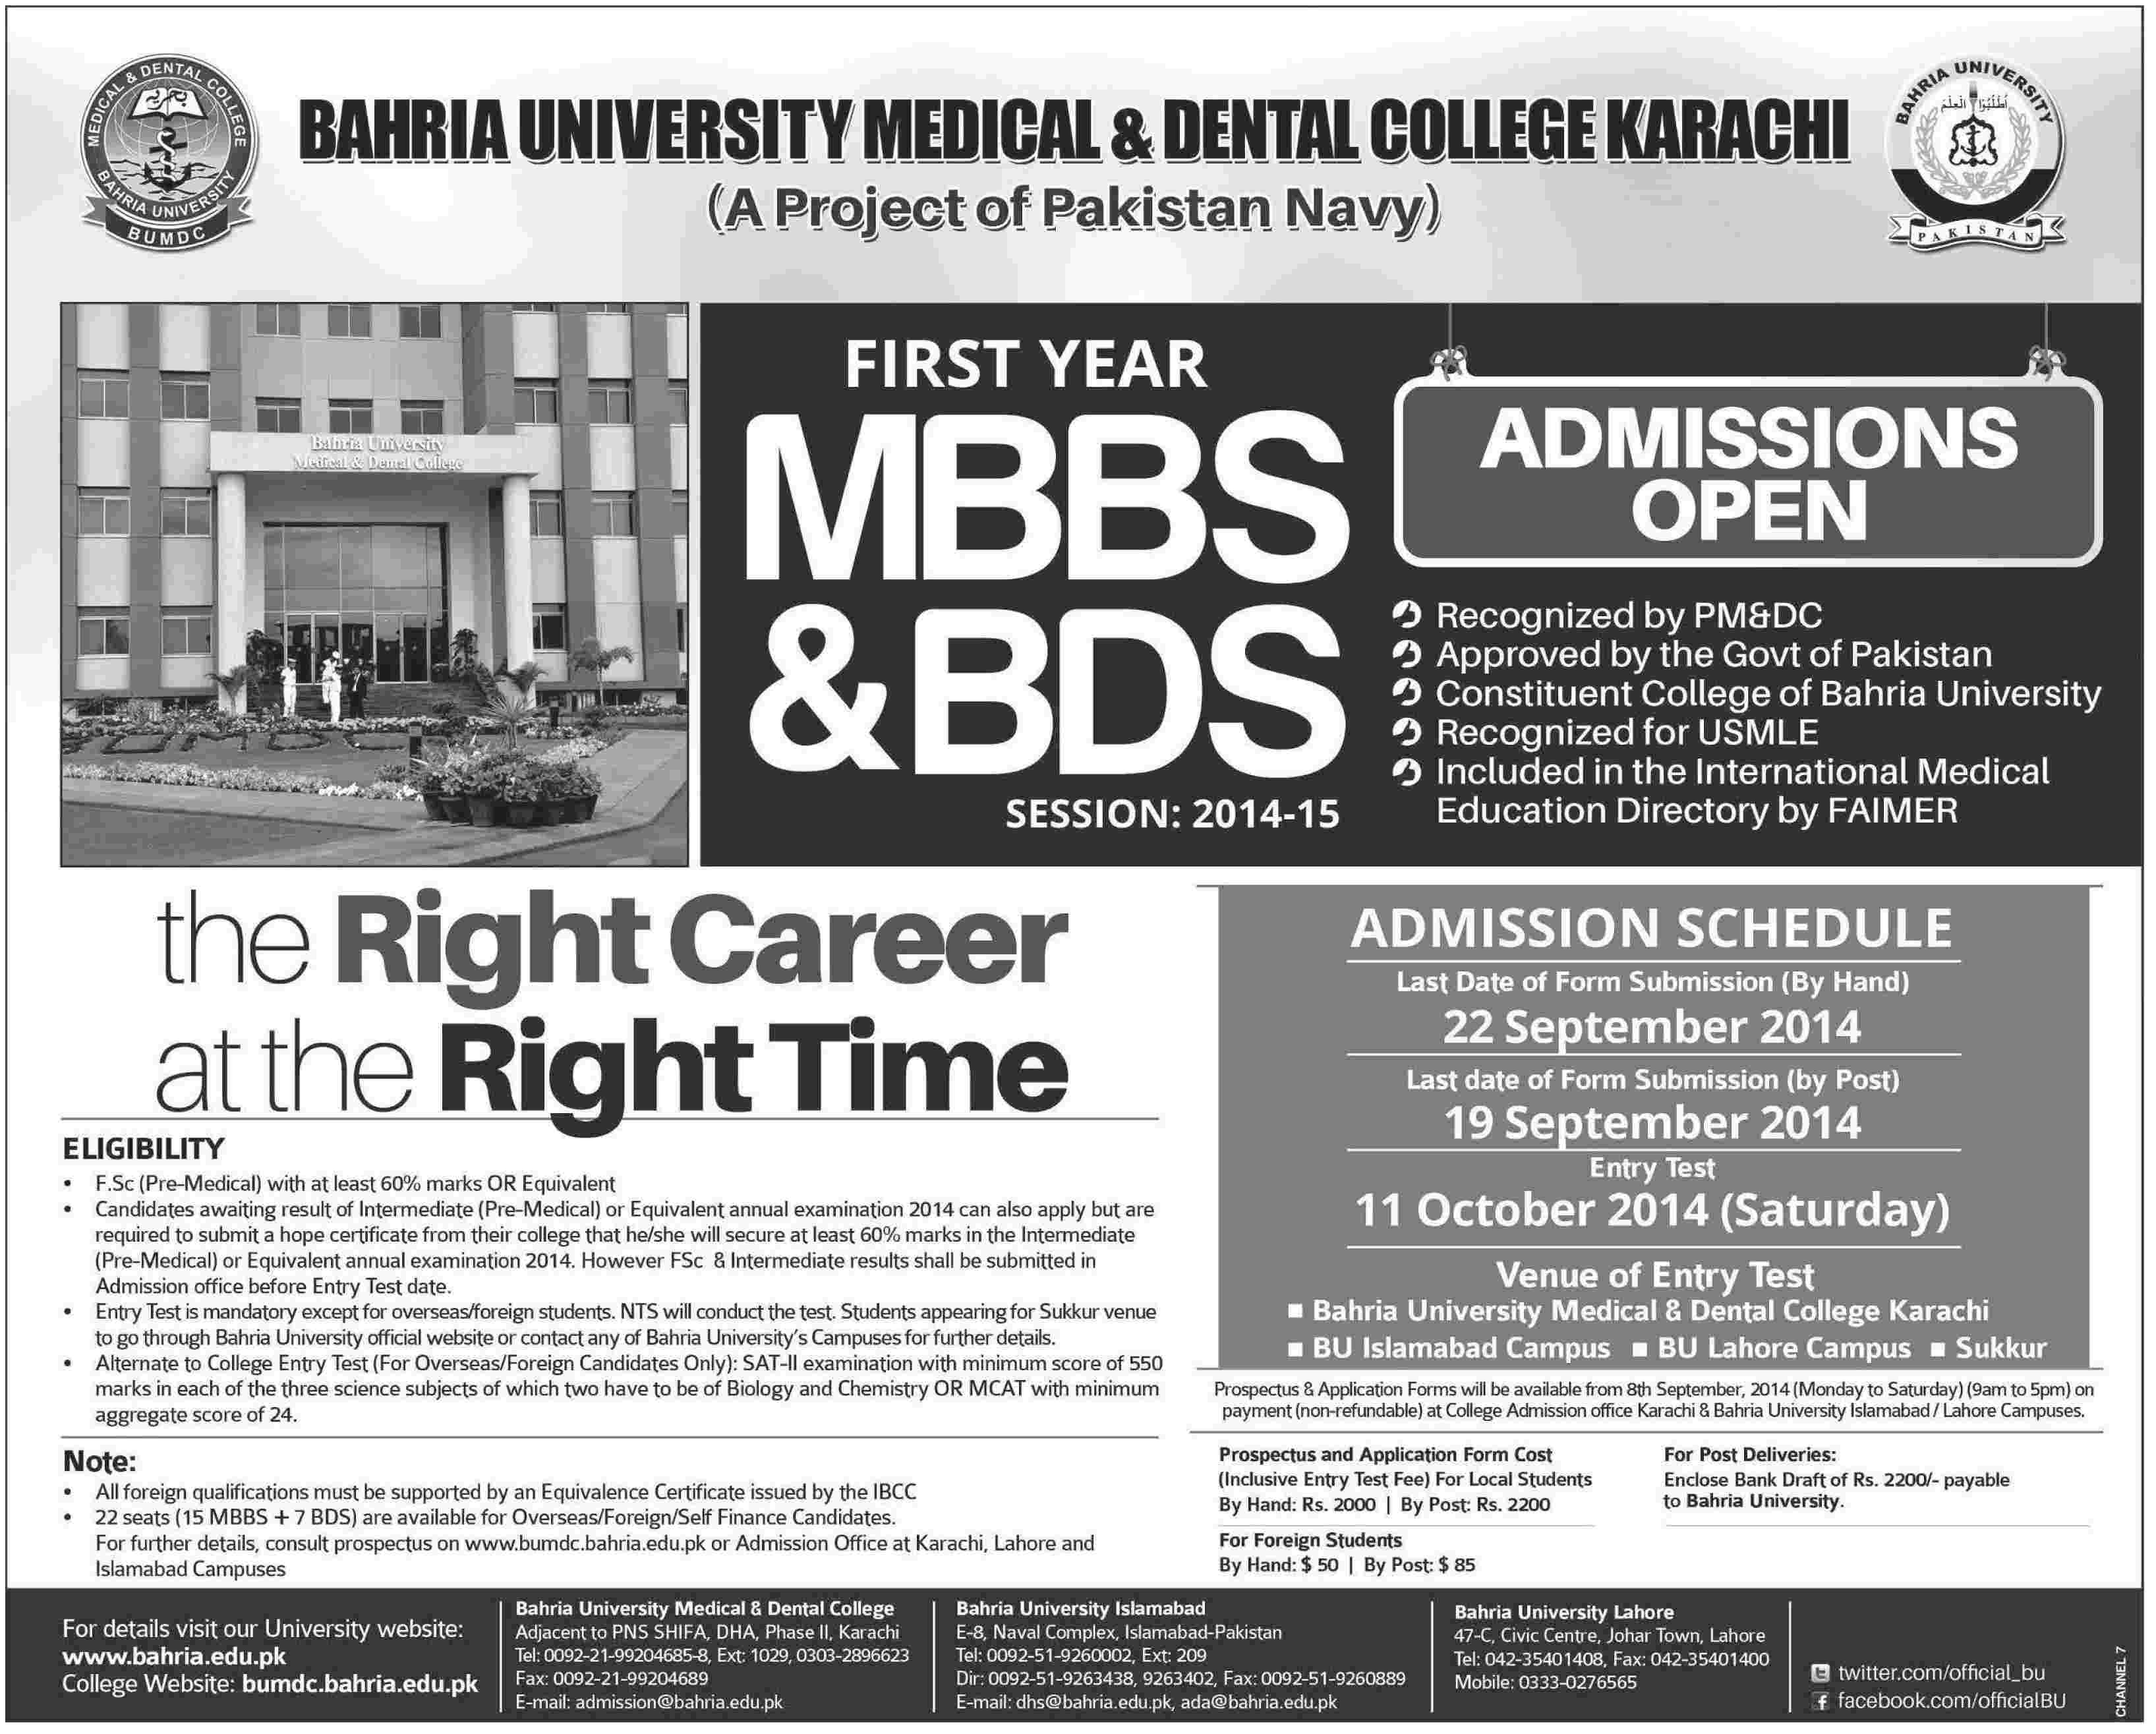 Bahria University Medical & Dental College (BUMDC) Karachi Admission Notice 2014 for Bachelor of Medicine, Bachelor of Surgery (MBBS), Bachelor of Dental Surgery (BDS)